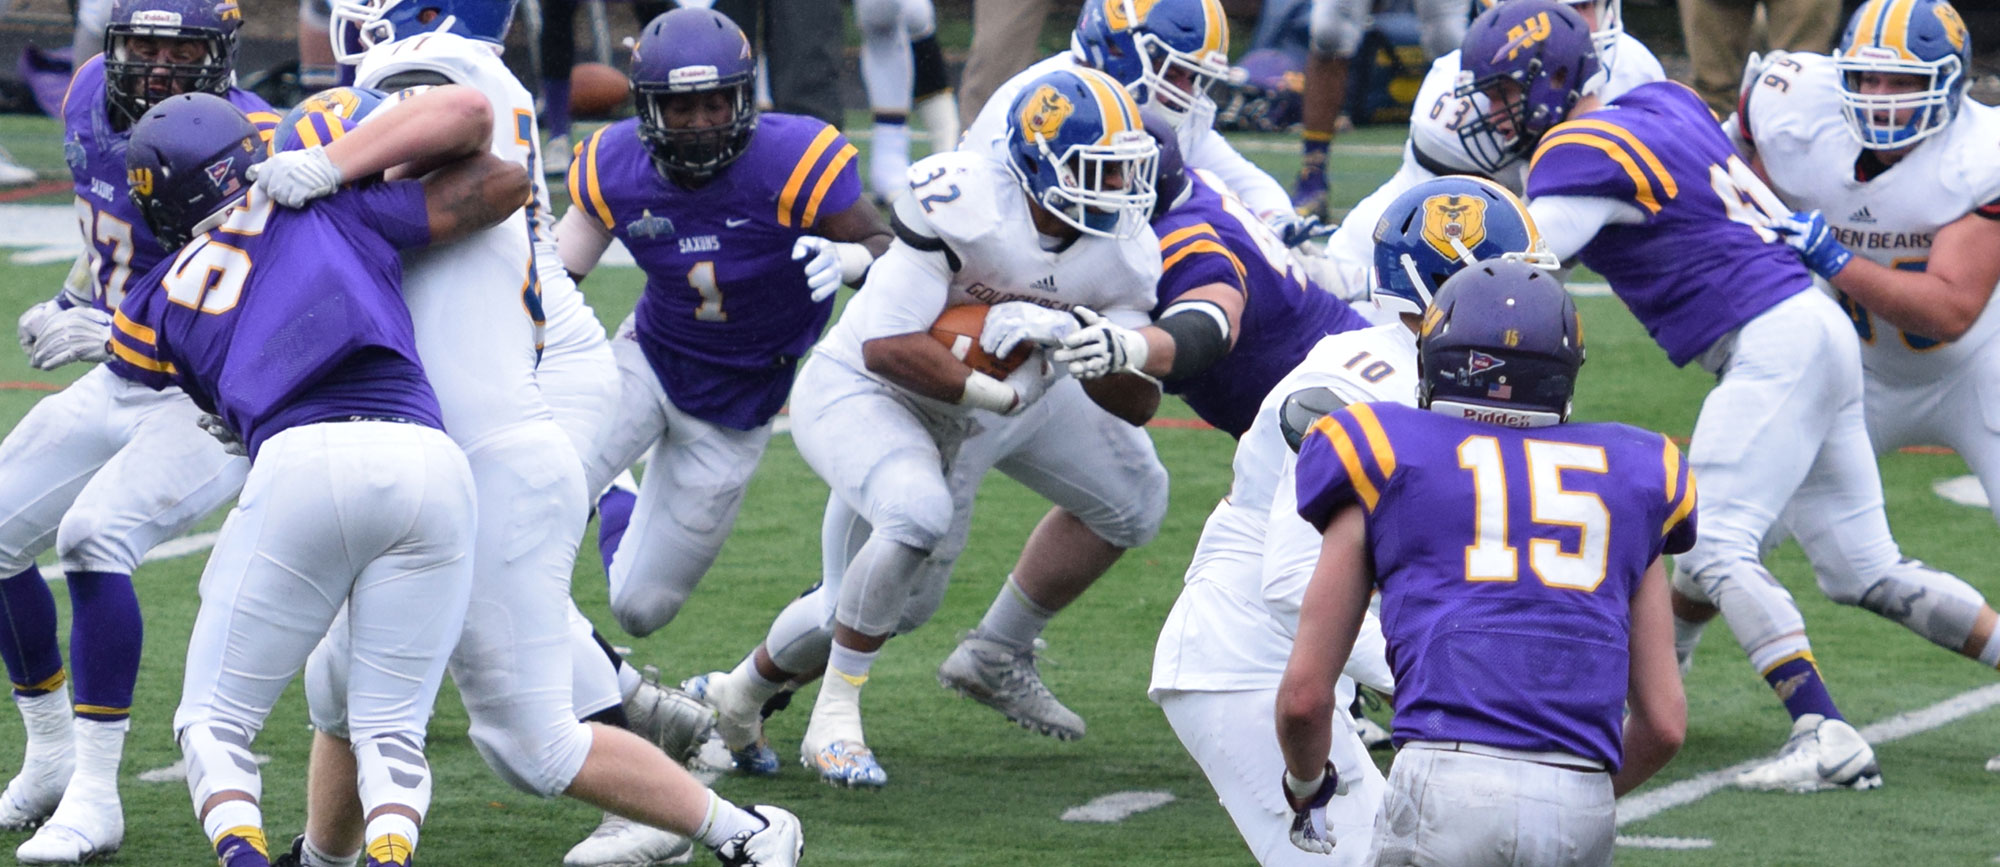 NCAA Tournament: Second Half Comeback Falls Just Short as Saxons Hold off Golden Bears, 30-24